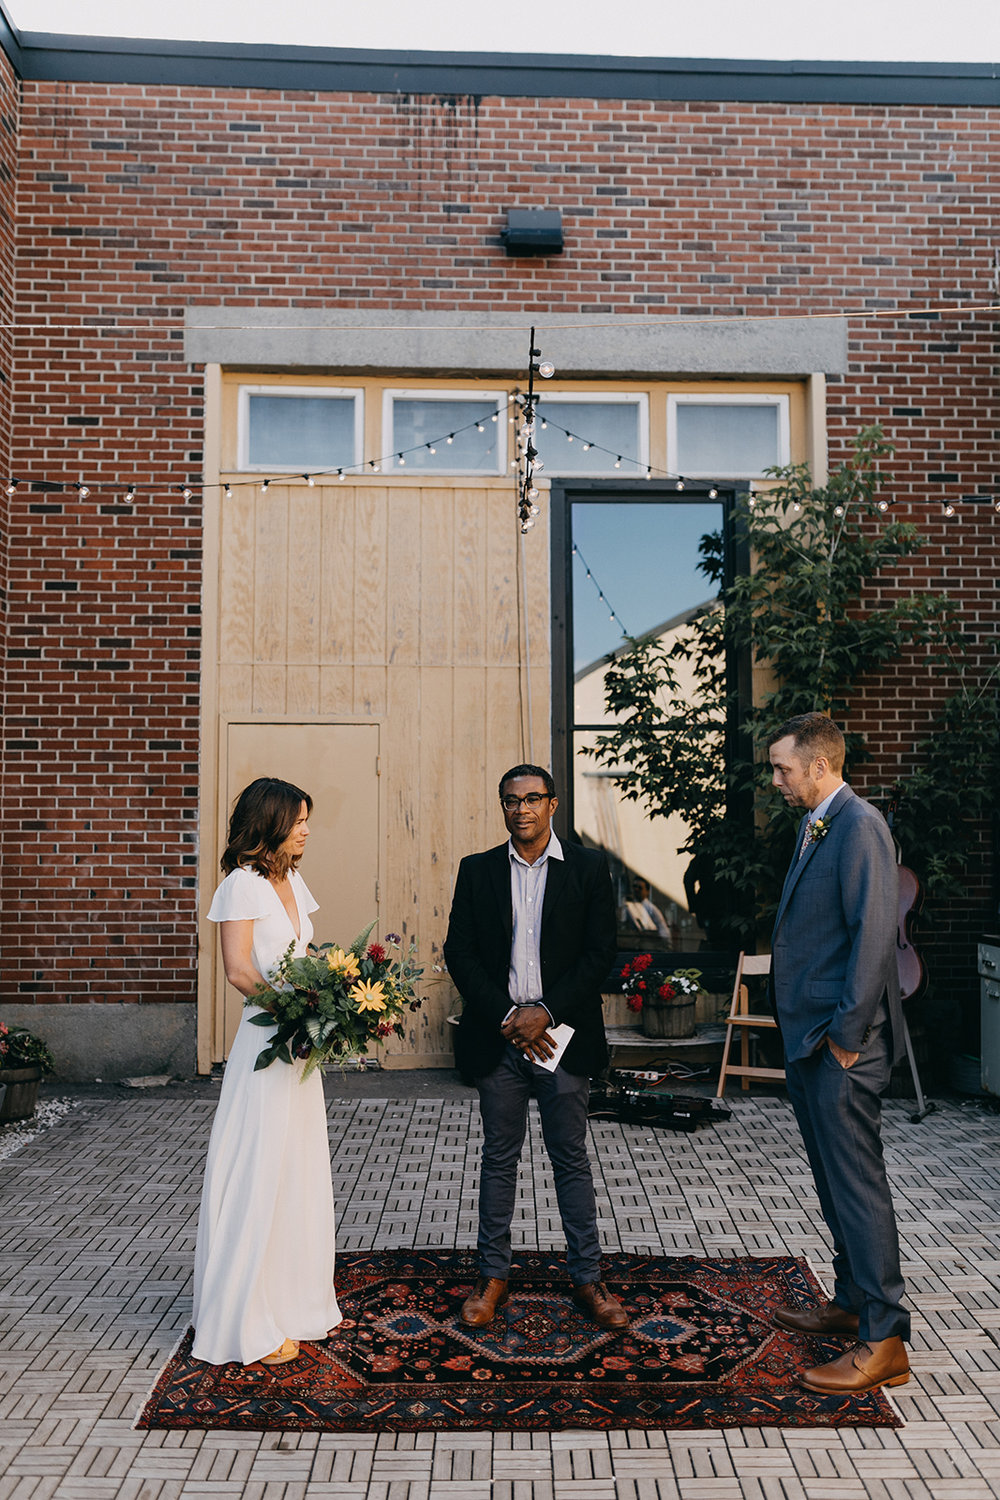 Here's how we got married, on a Thursday night in Portland, ME right in the middle of wedding season. Credit: Emily Delamater (2018)